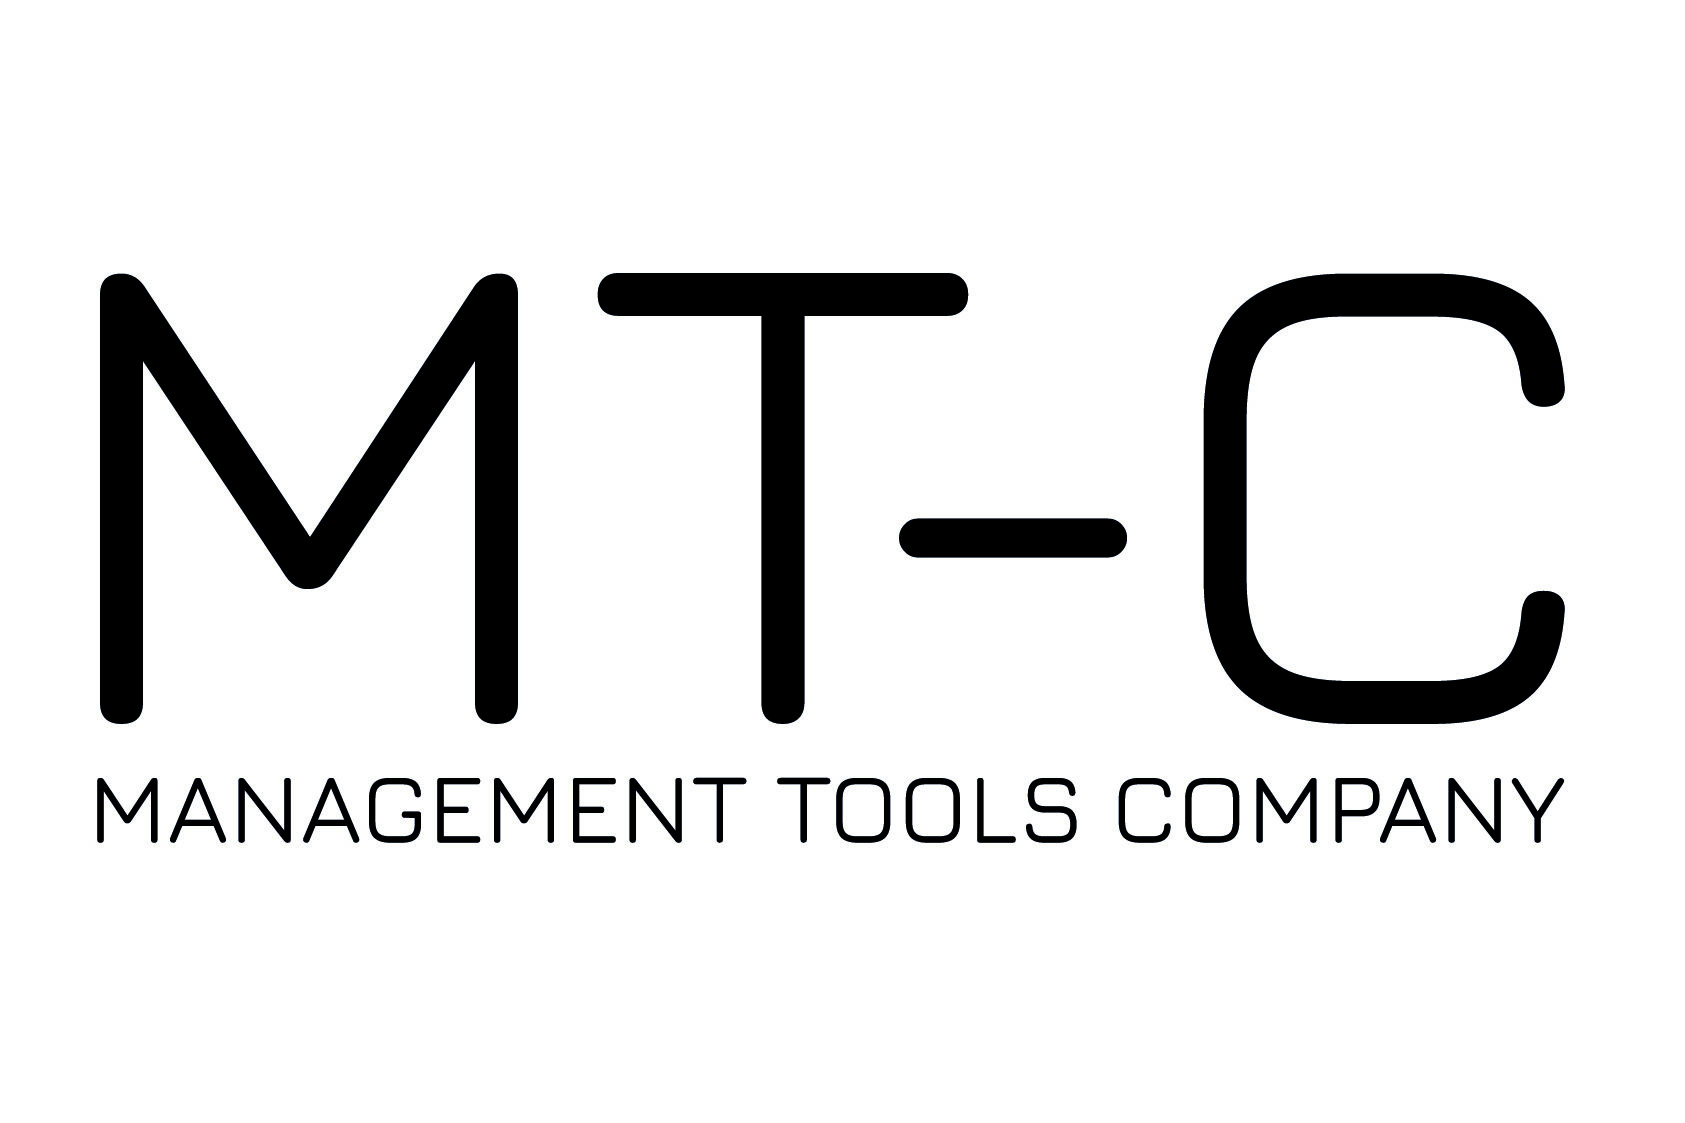 Management Tools Company